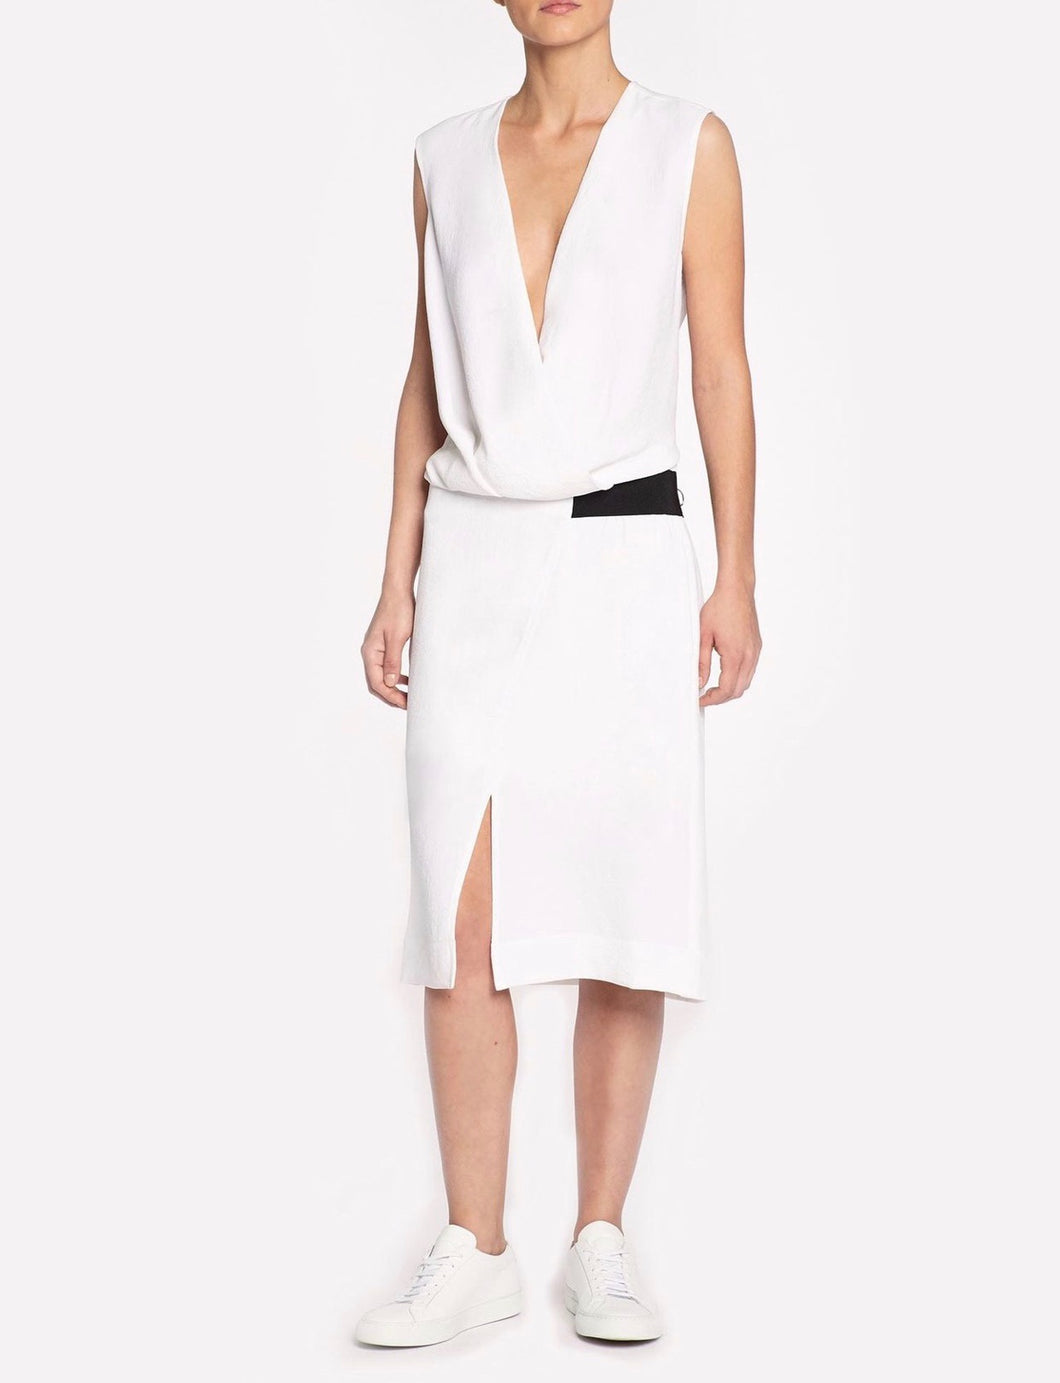 Brochu Walker Salt White Dress